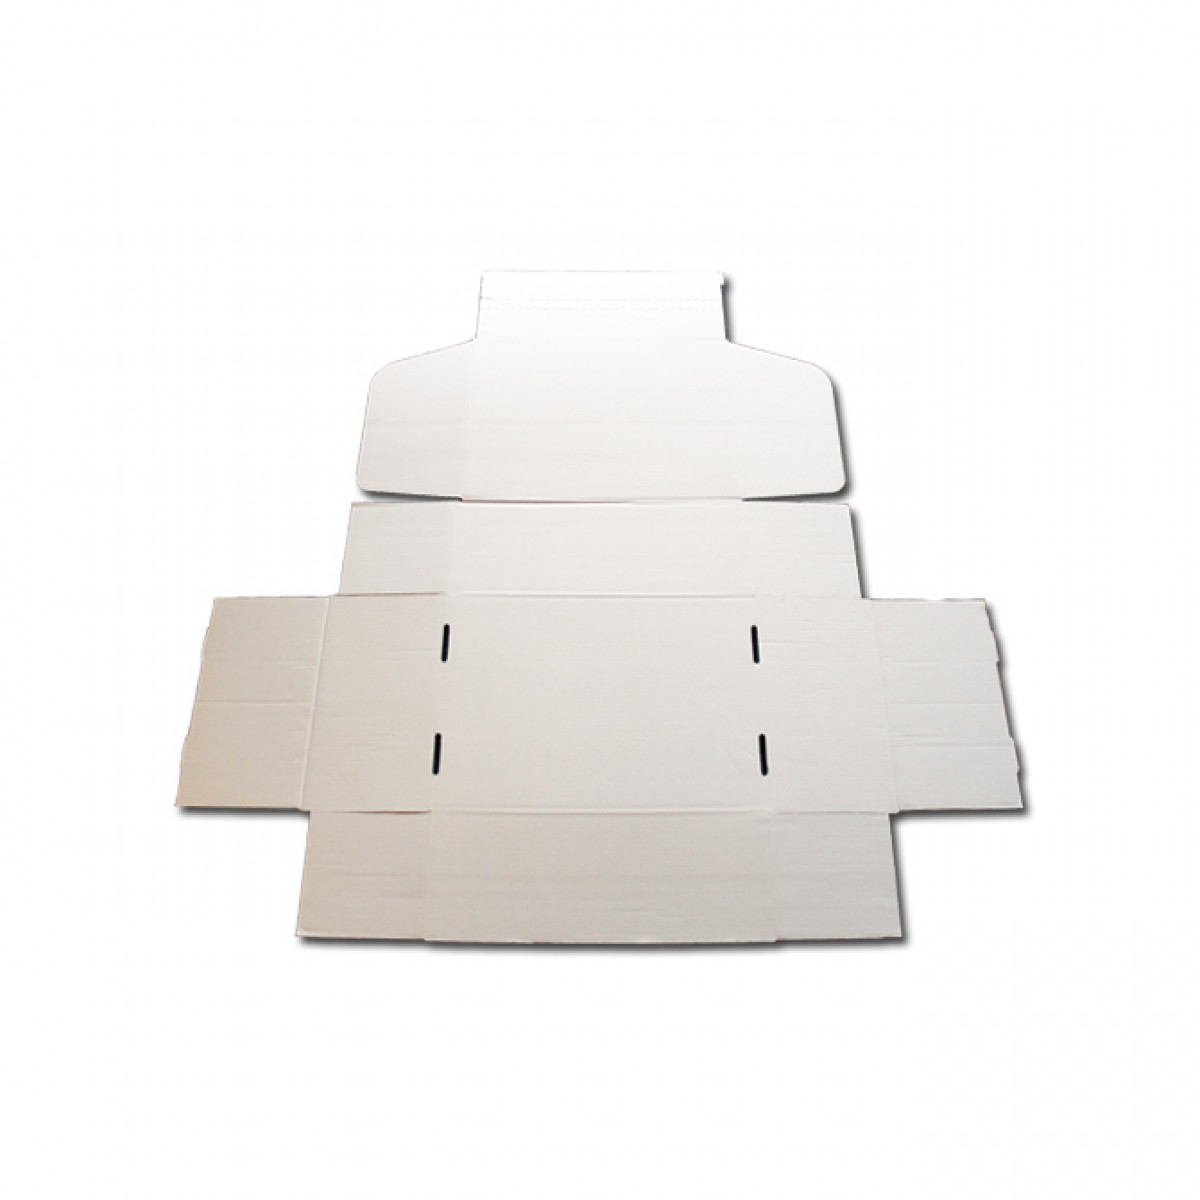 Easybox white 300 x 230 x 110 mm